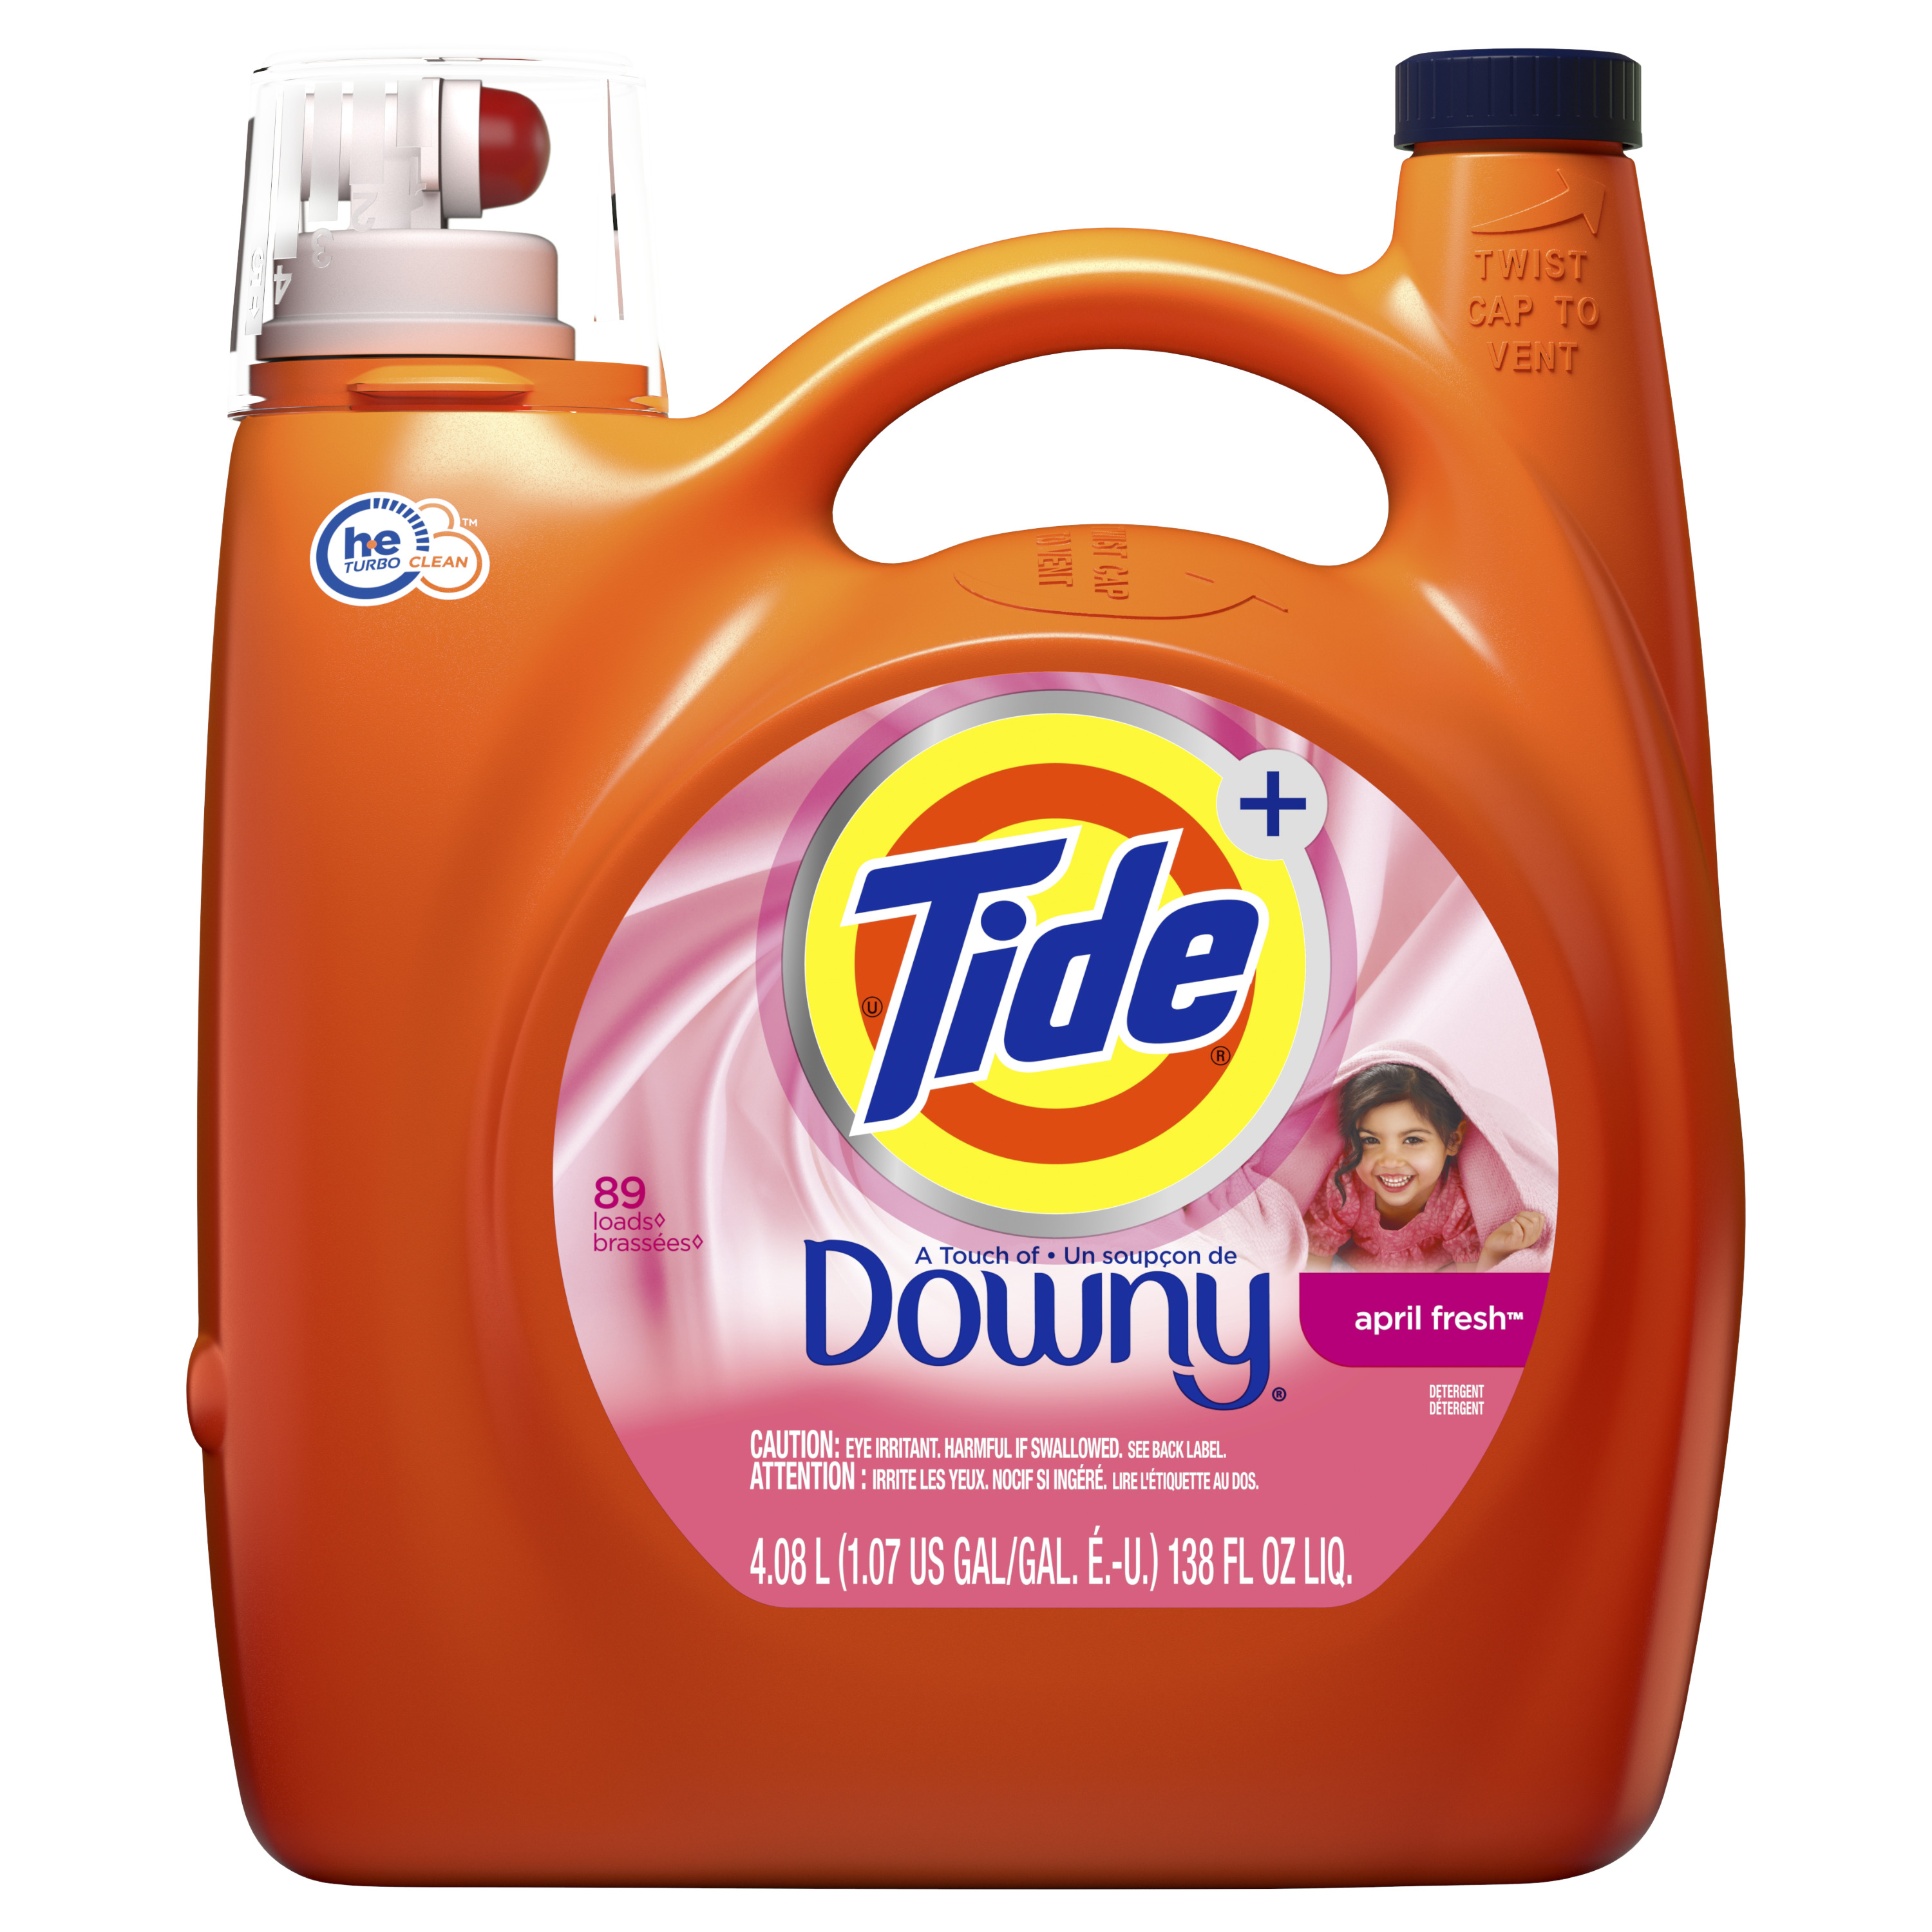 Tide plus Downy Liquid Laundry Detergent, April Fresh, 138 fl oz 89 loads